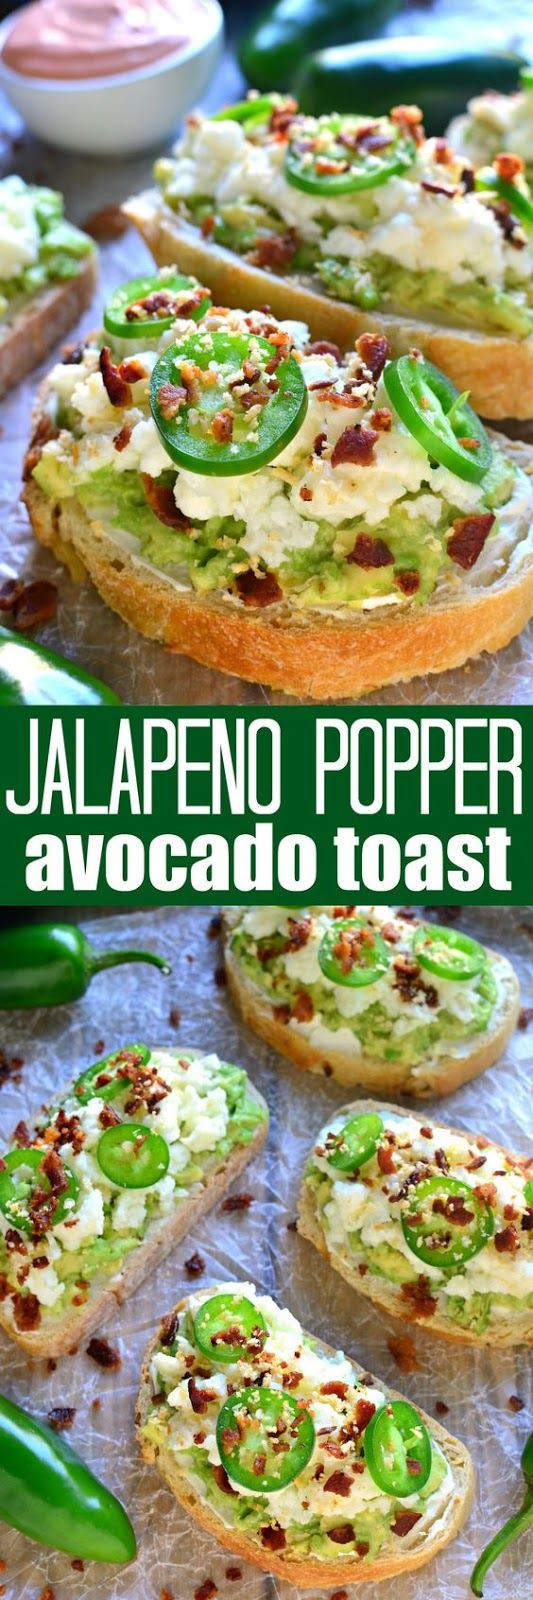 JALAPENO POPPER AVOCADO TOAST